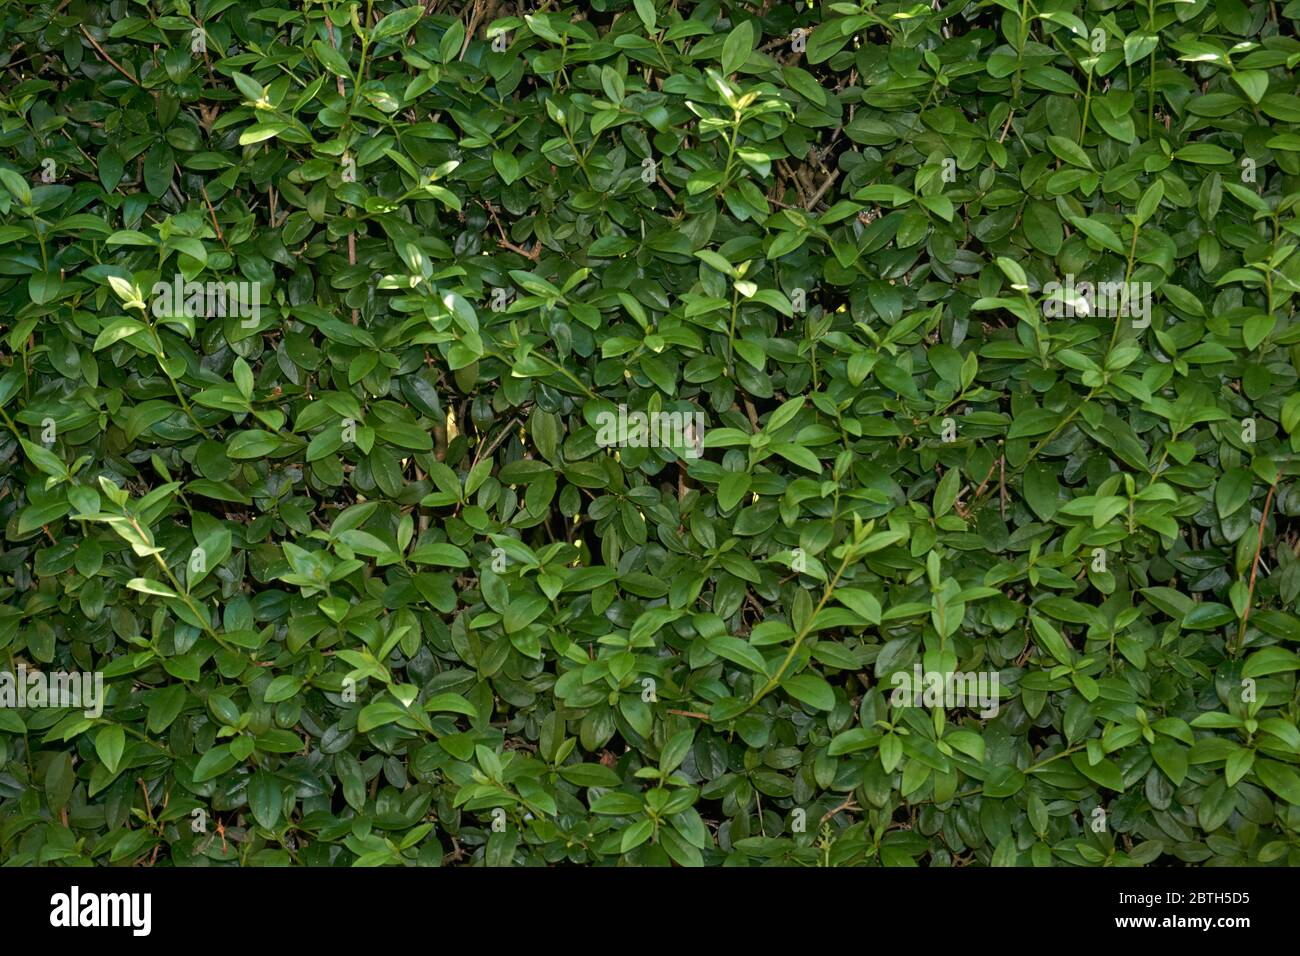 The wall consists of a green hedge , rich beautiful color , can be used as background, texture, backdrop. Stock Photo